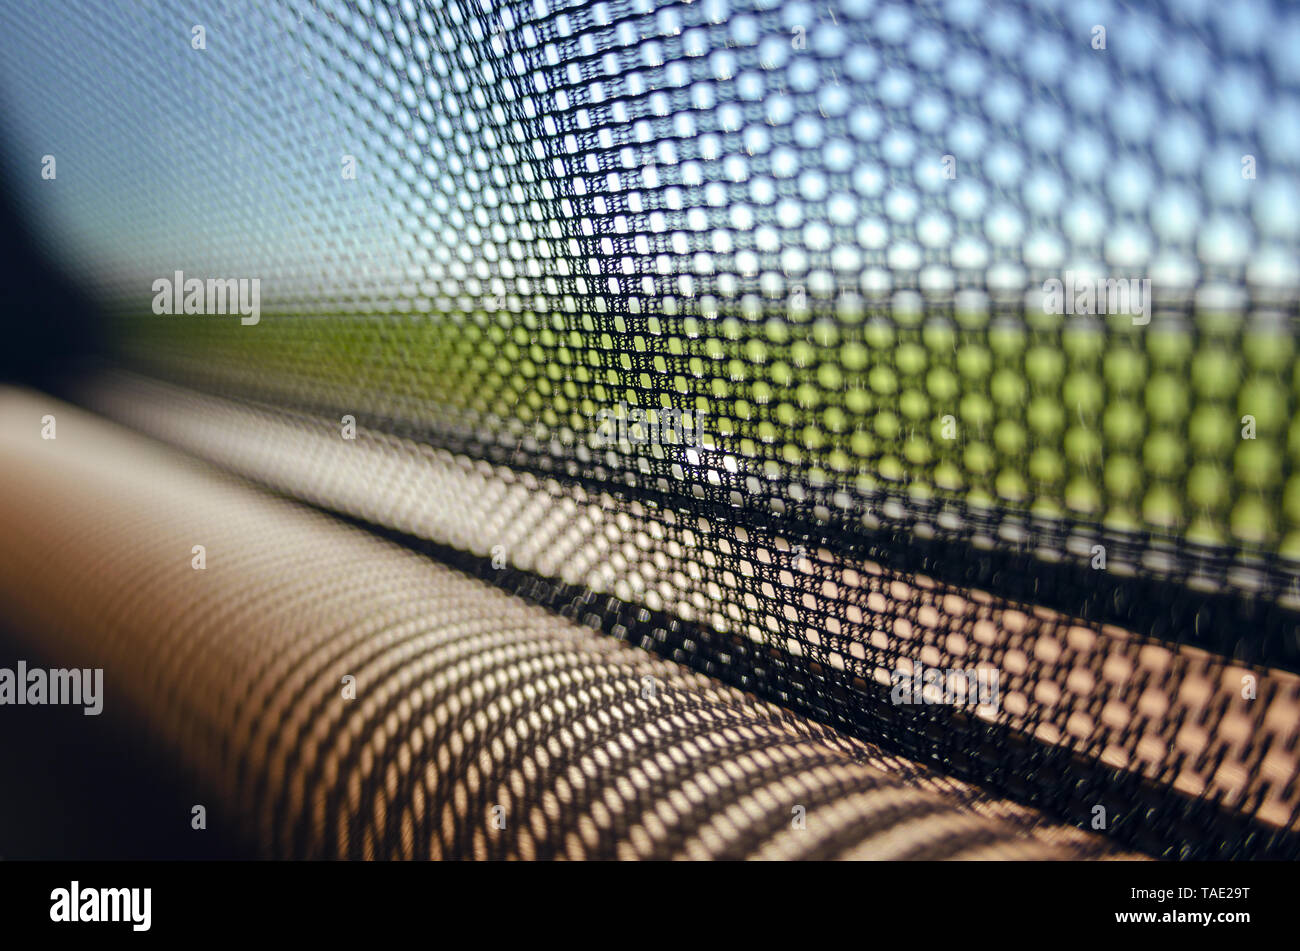 Sun blinds on the glass of the rear door of the car black color close-up protects the textured grid from the sun's rays. Car service. - Stock Image